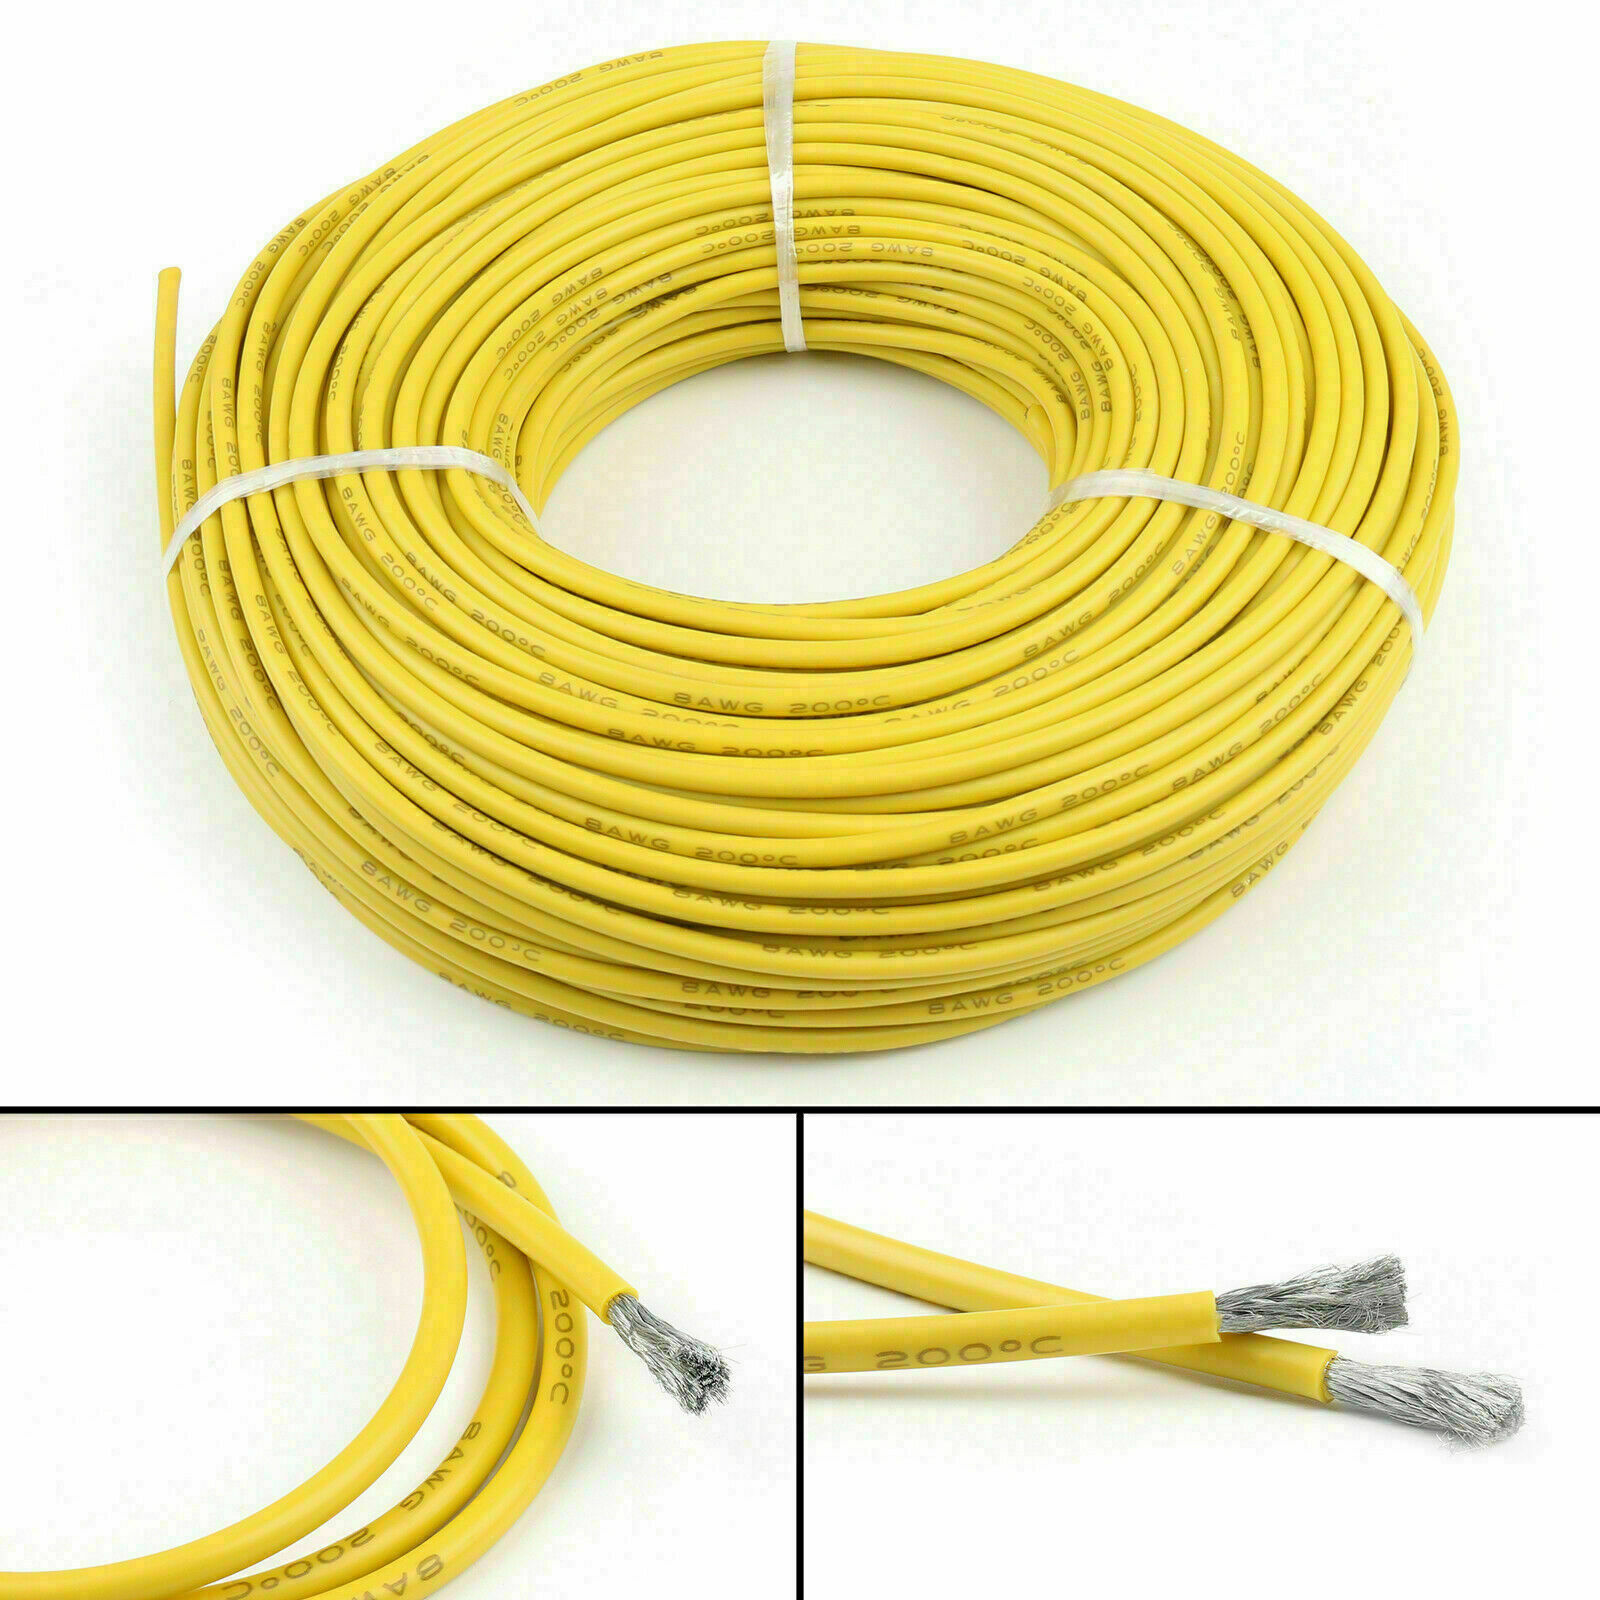 18 20 22 24 26 28AWG Silicone Wire Soft Cable Flexible Tinned Copper 2M 5M 10M